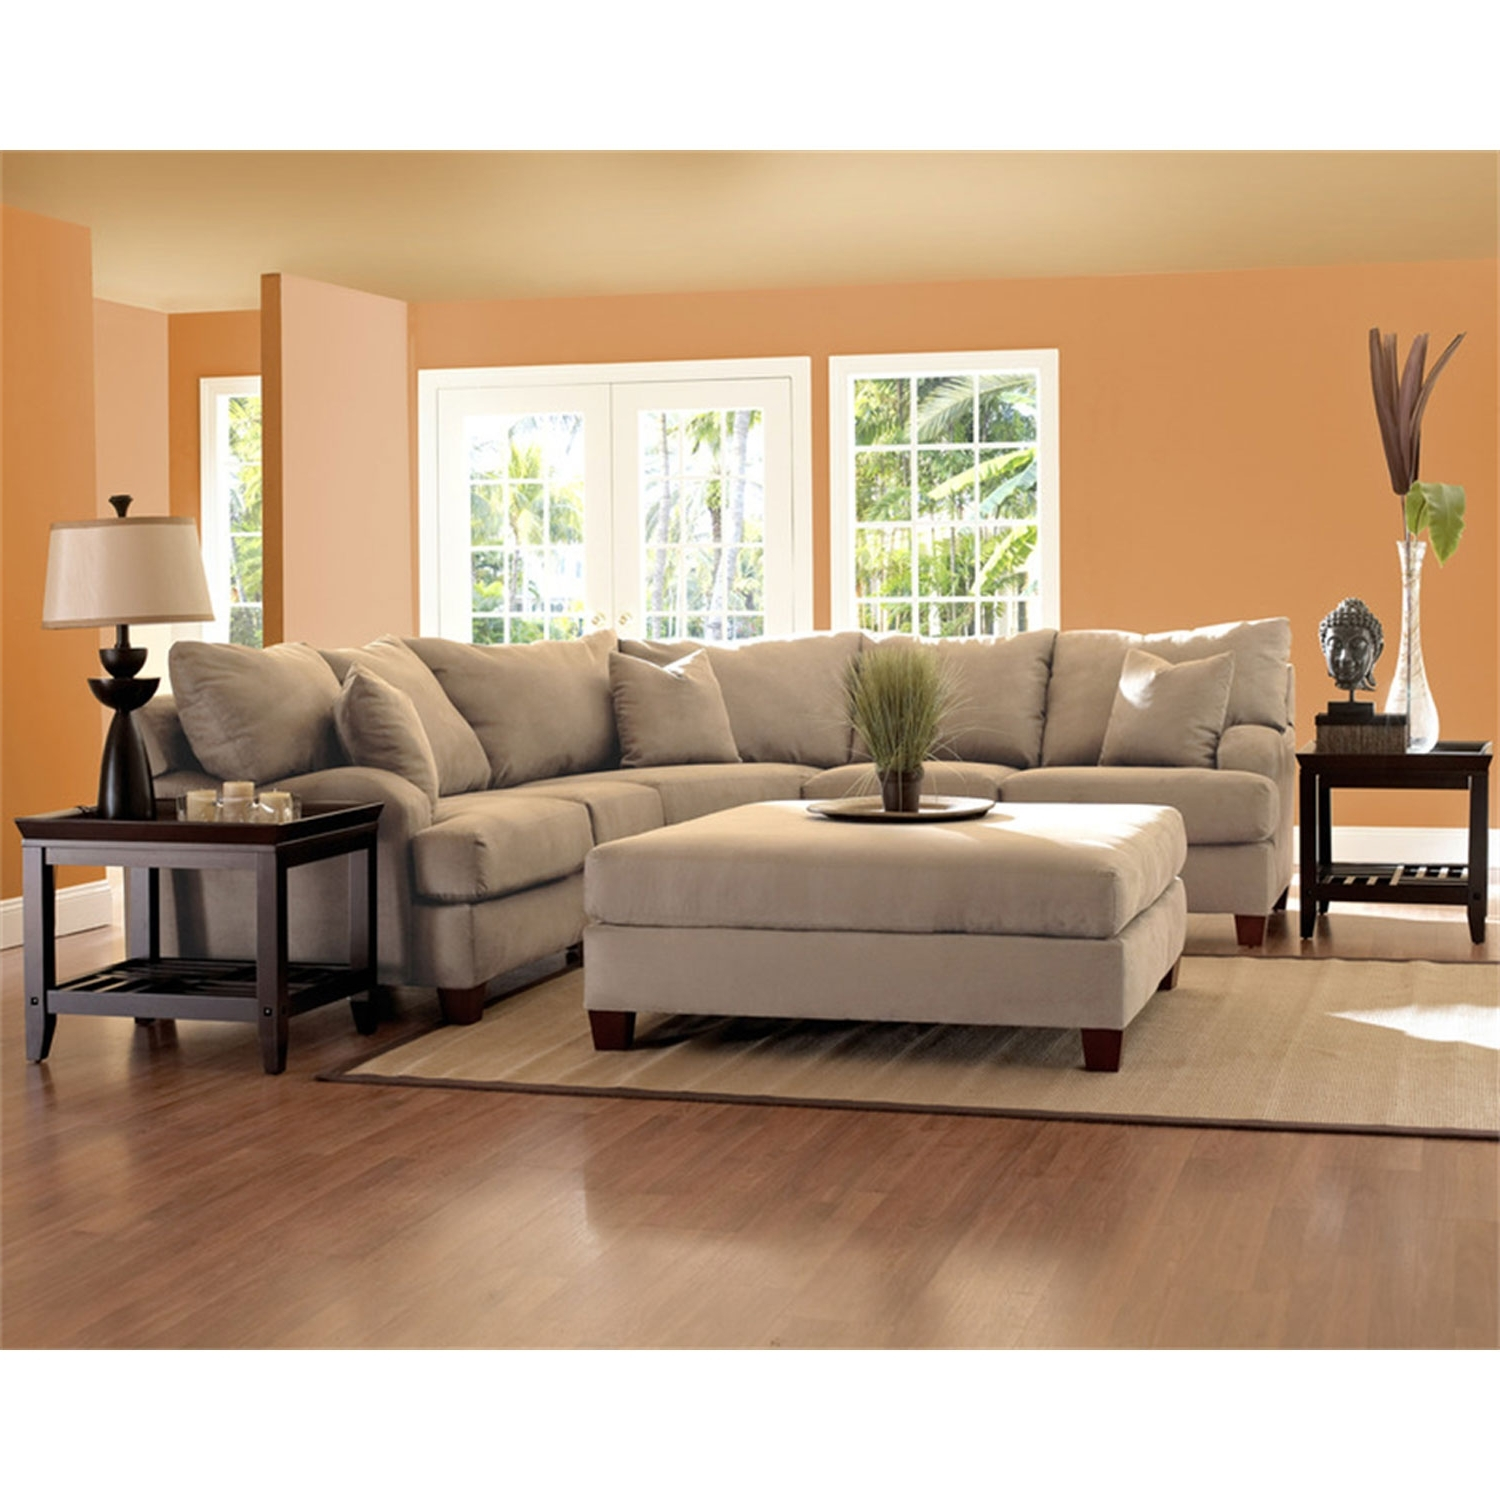 Small Deep Sectional Sofa (View 18 of 20)